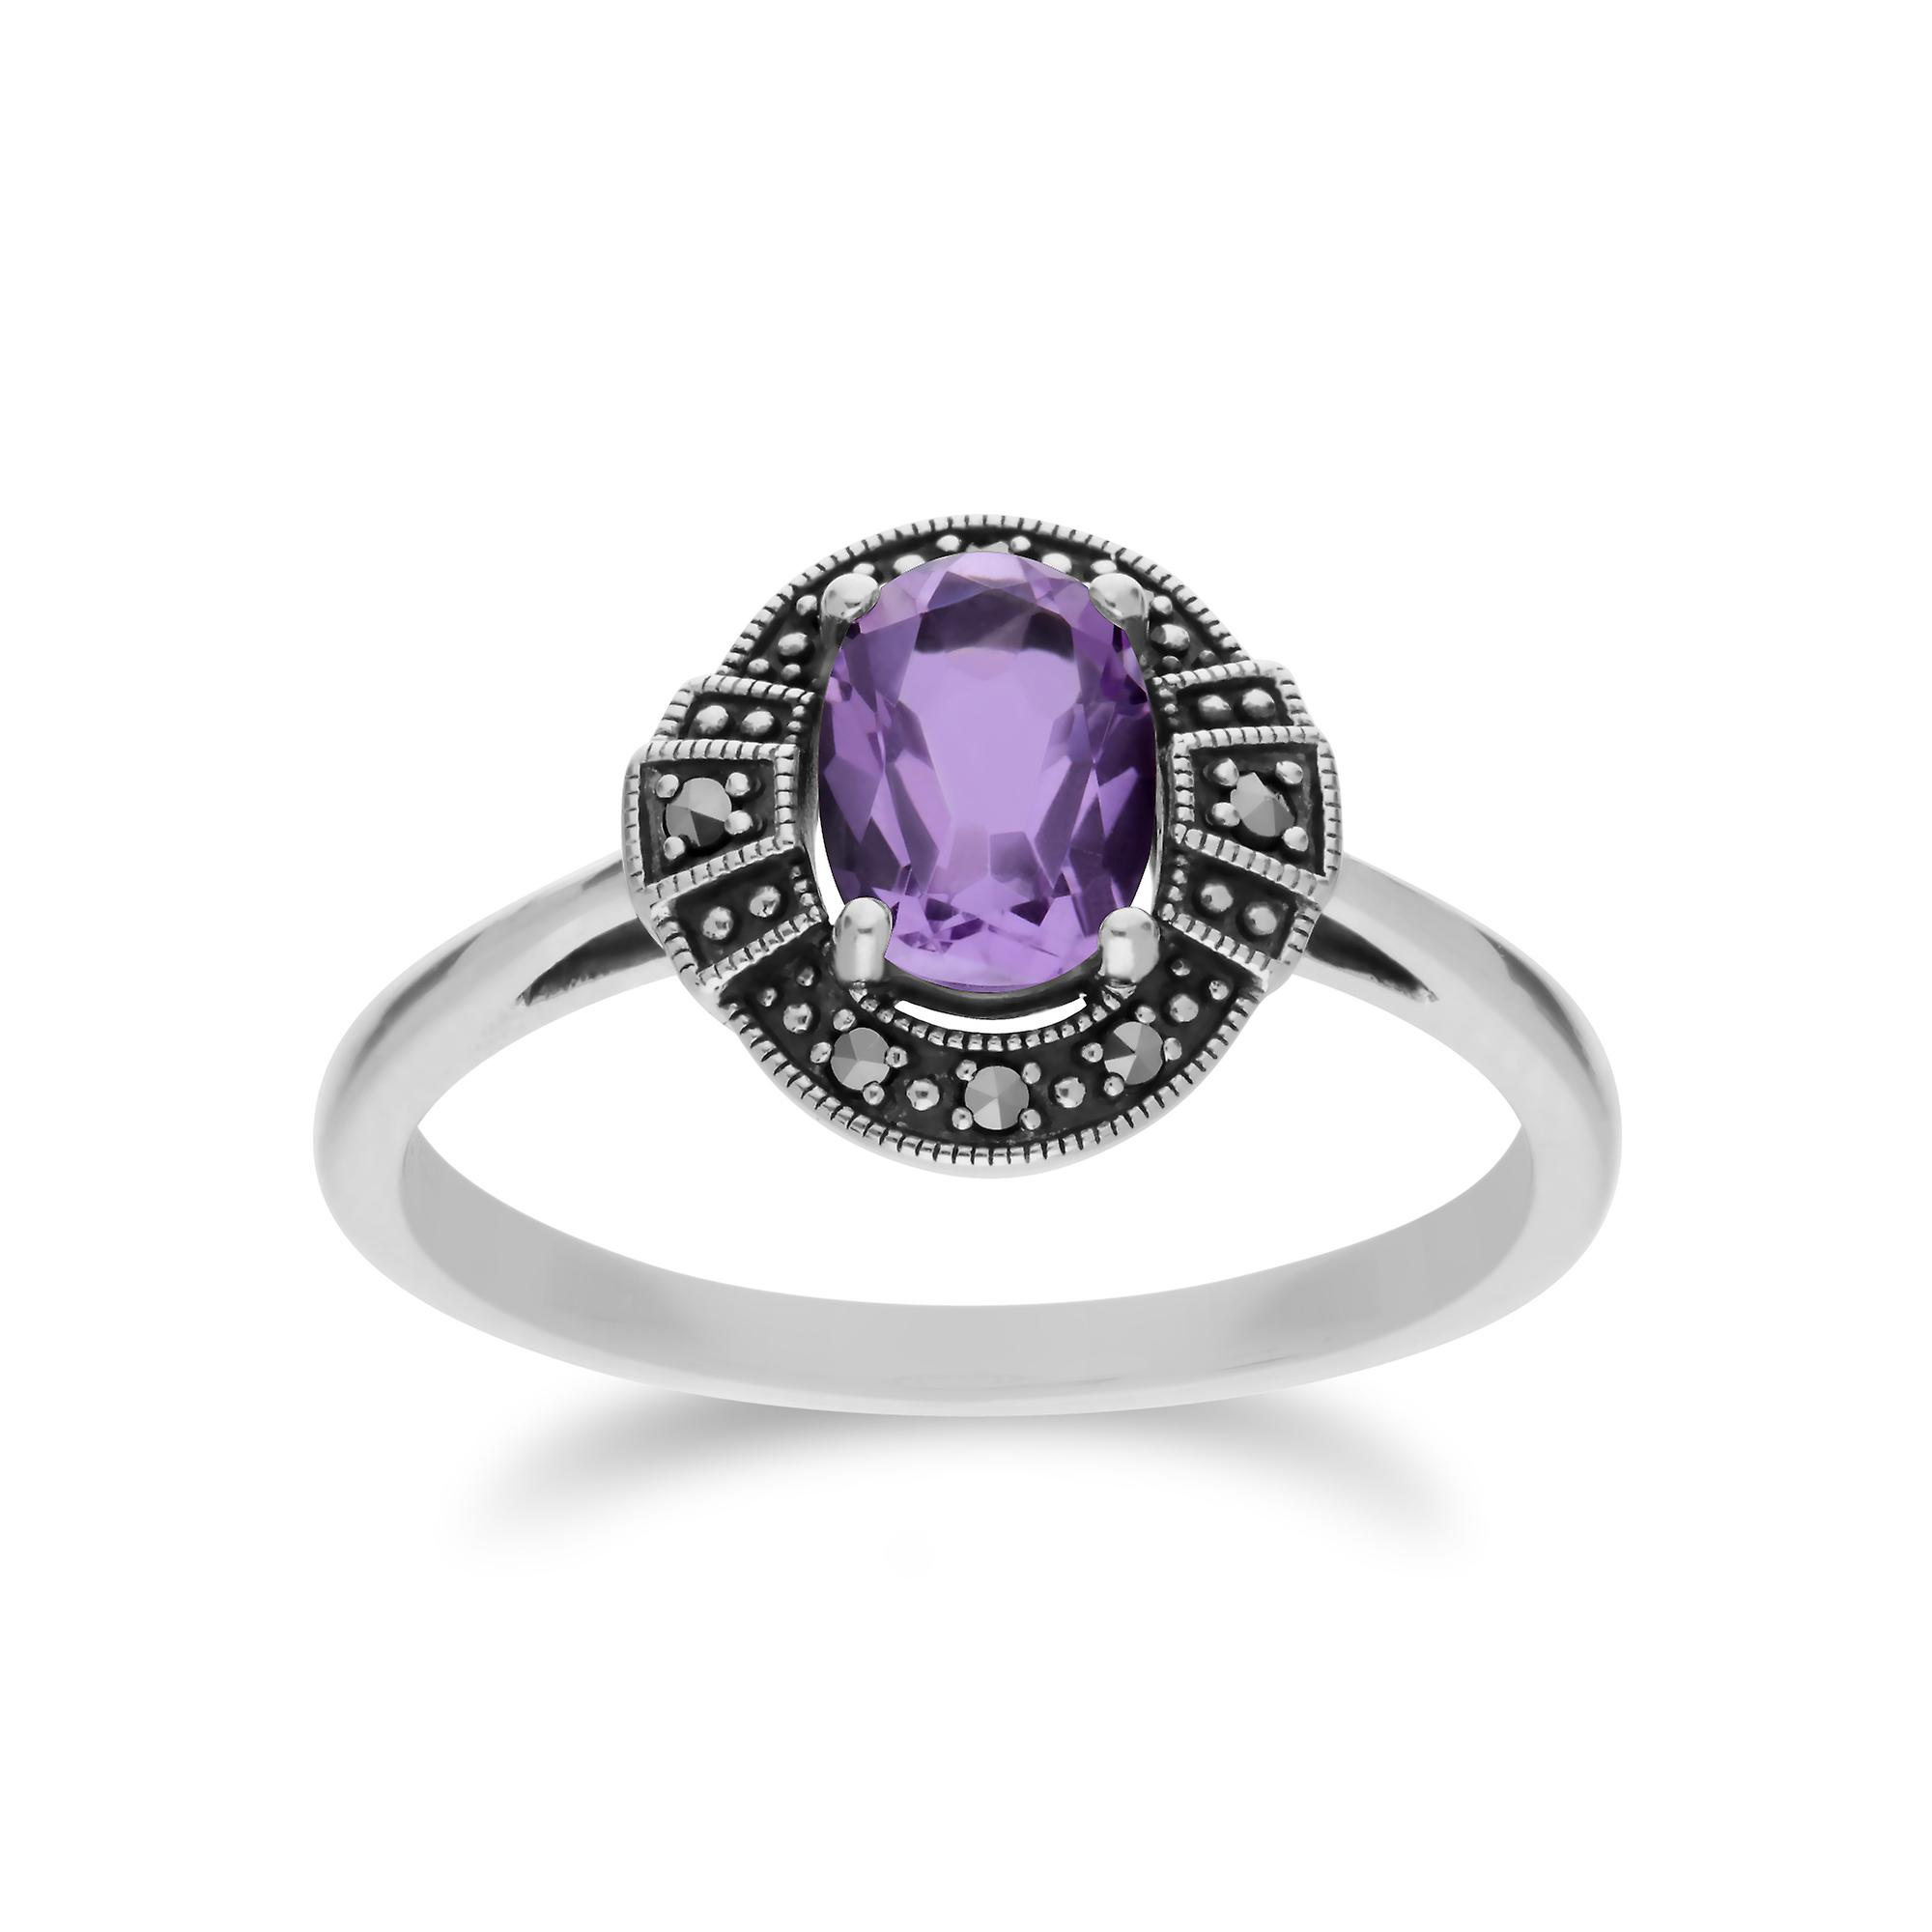 Gemondo Sterling Silver Oval Amethyst and Marcasite Cluster Ring